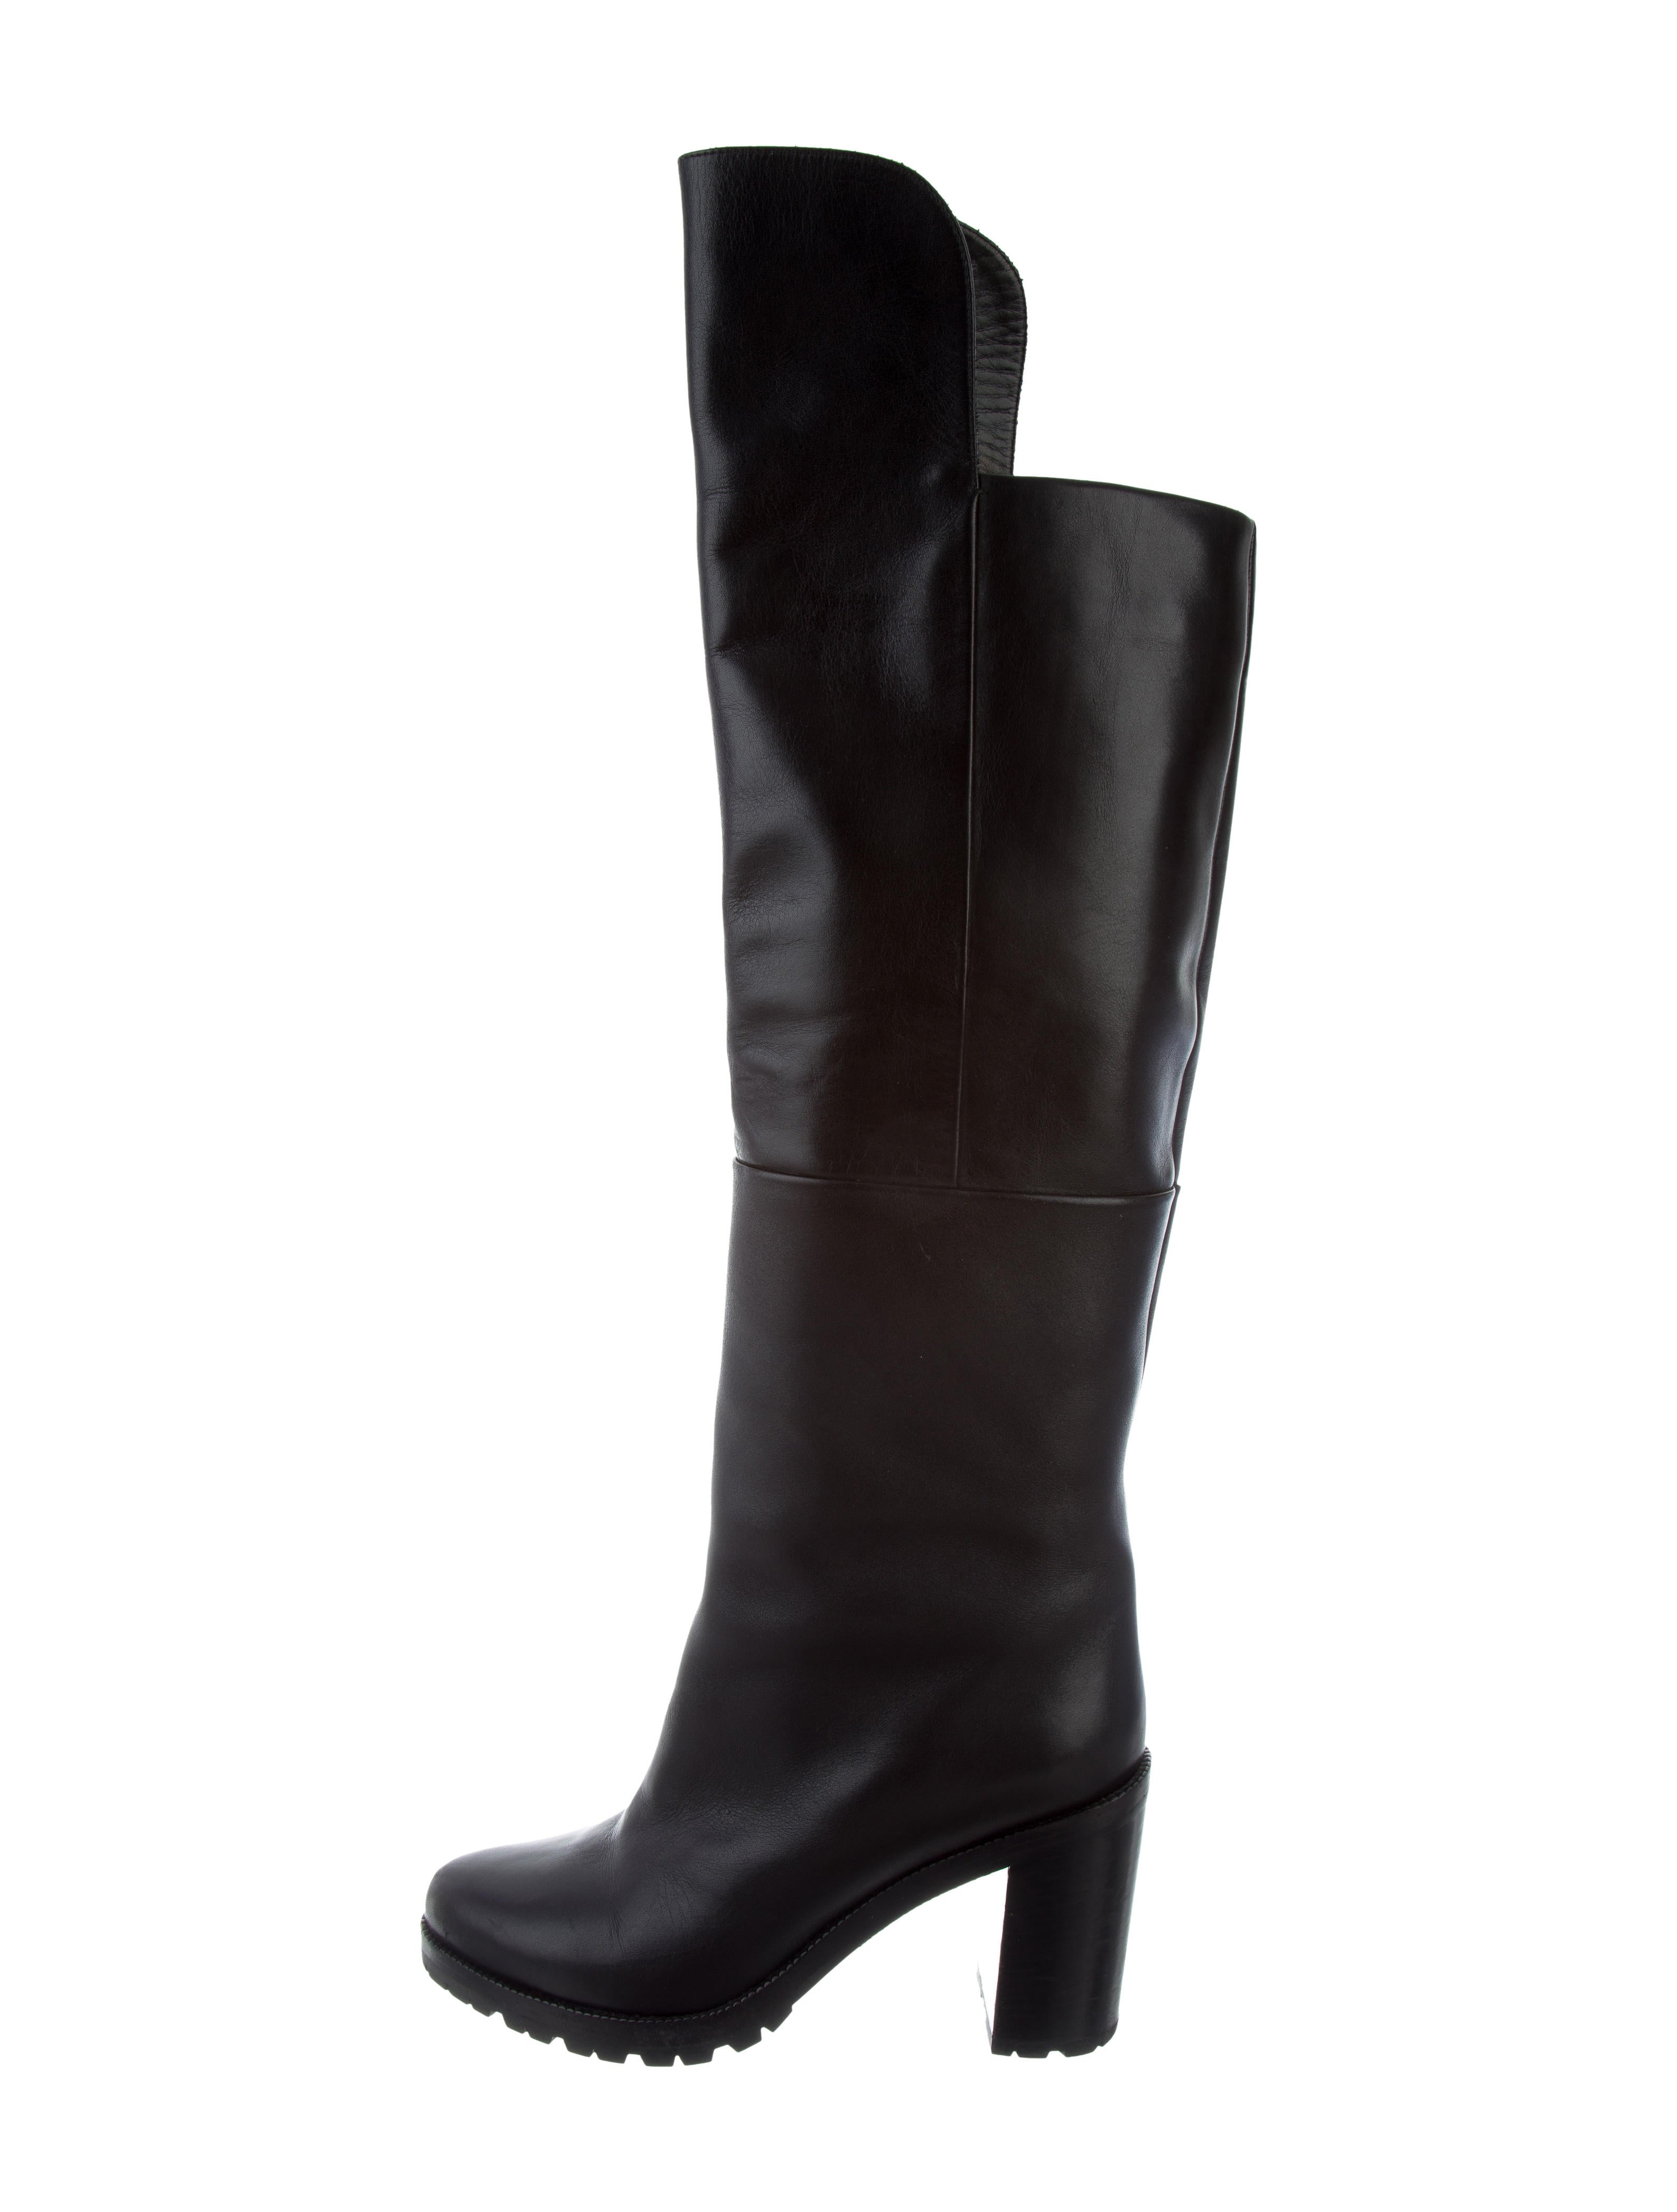 Walter Steiger Leather Over-The-Knee Boots sneakernews cheap price DAfrK2LD